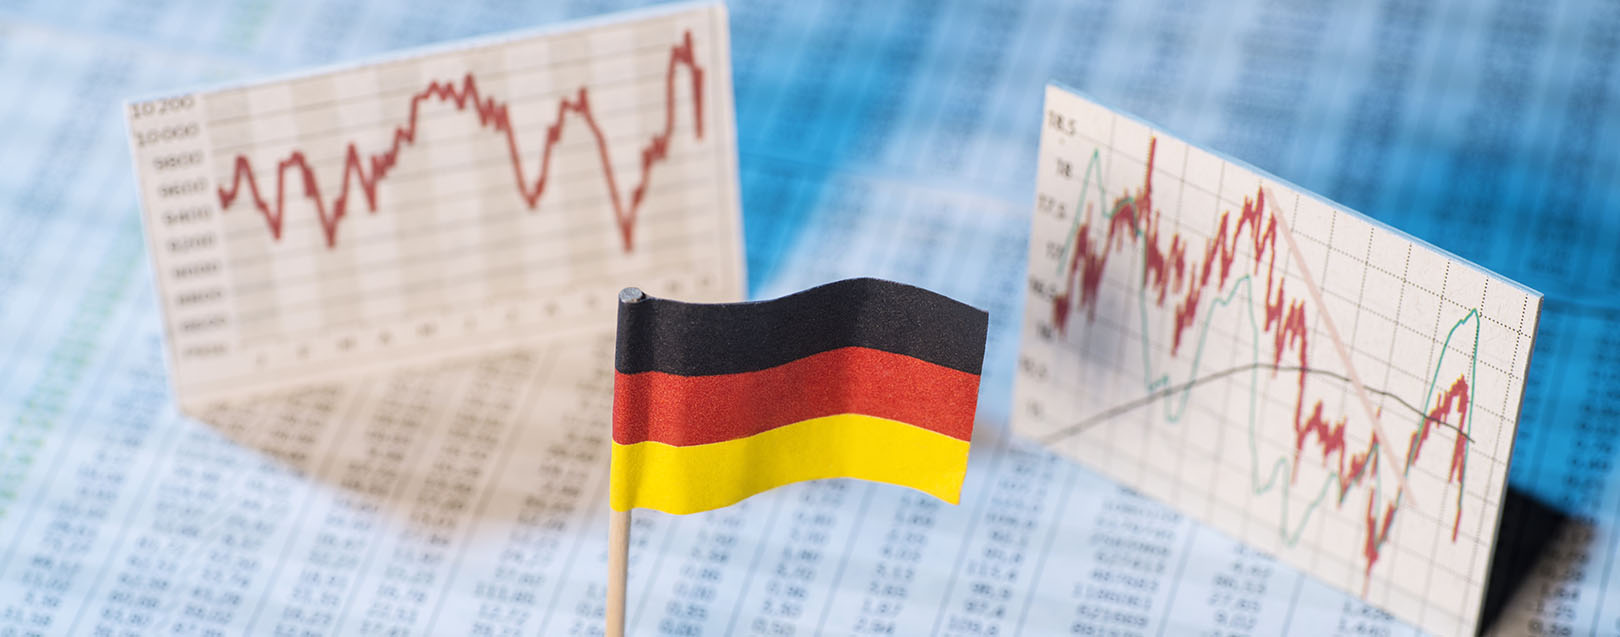 Germany boasts robust trade and industrial growth in Feb 2017